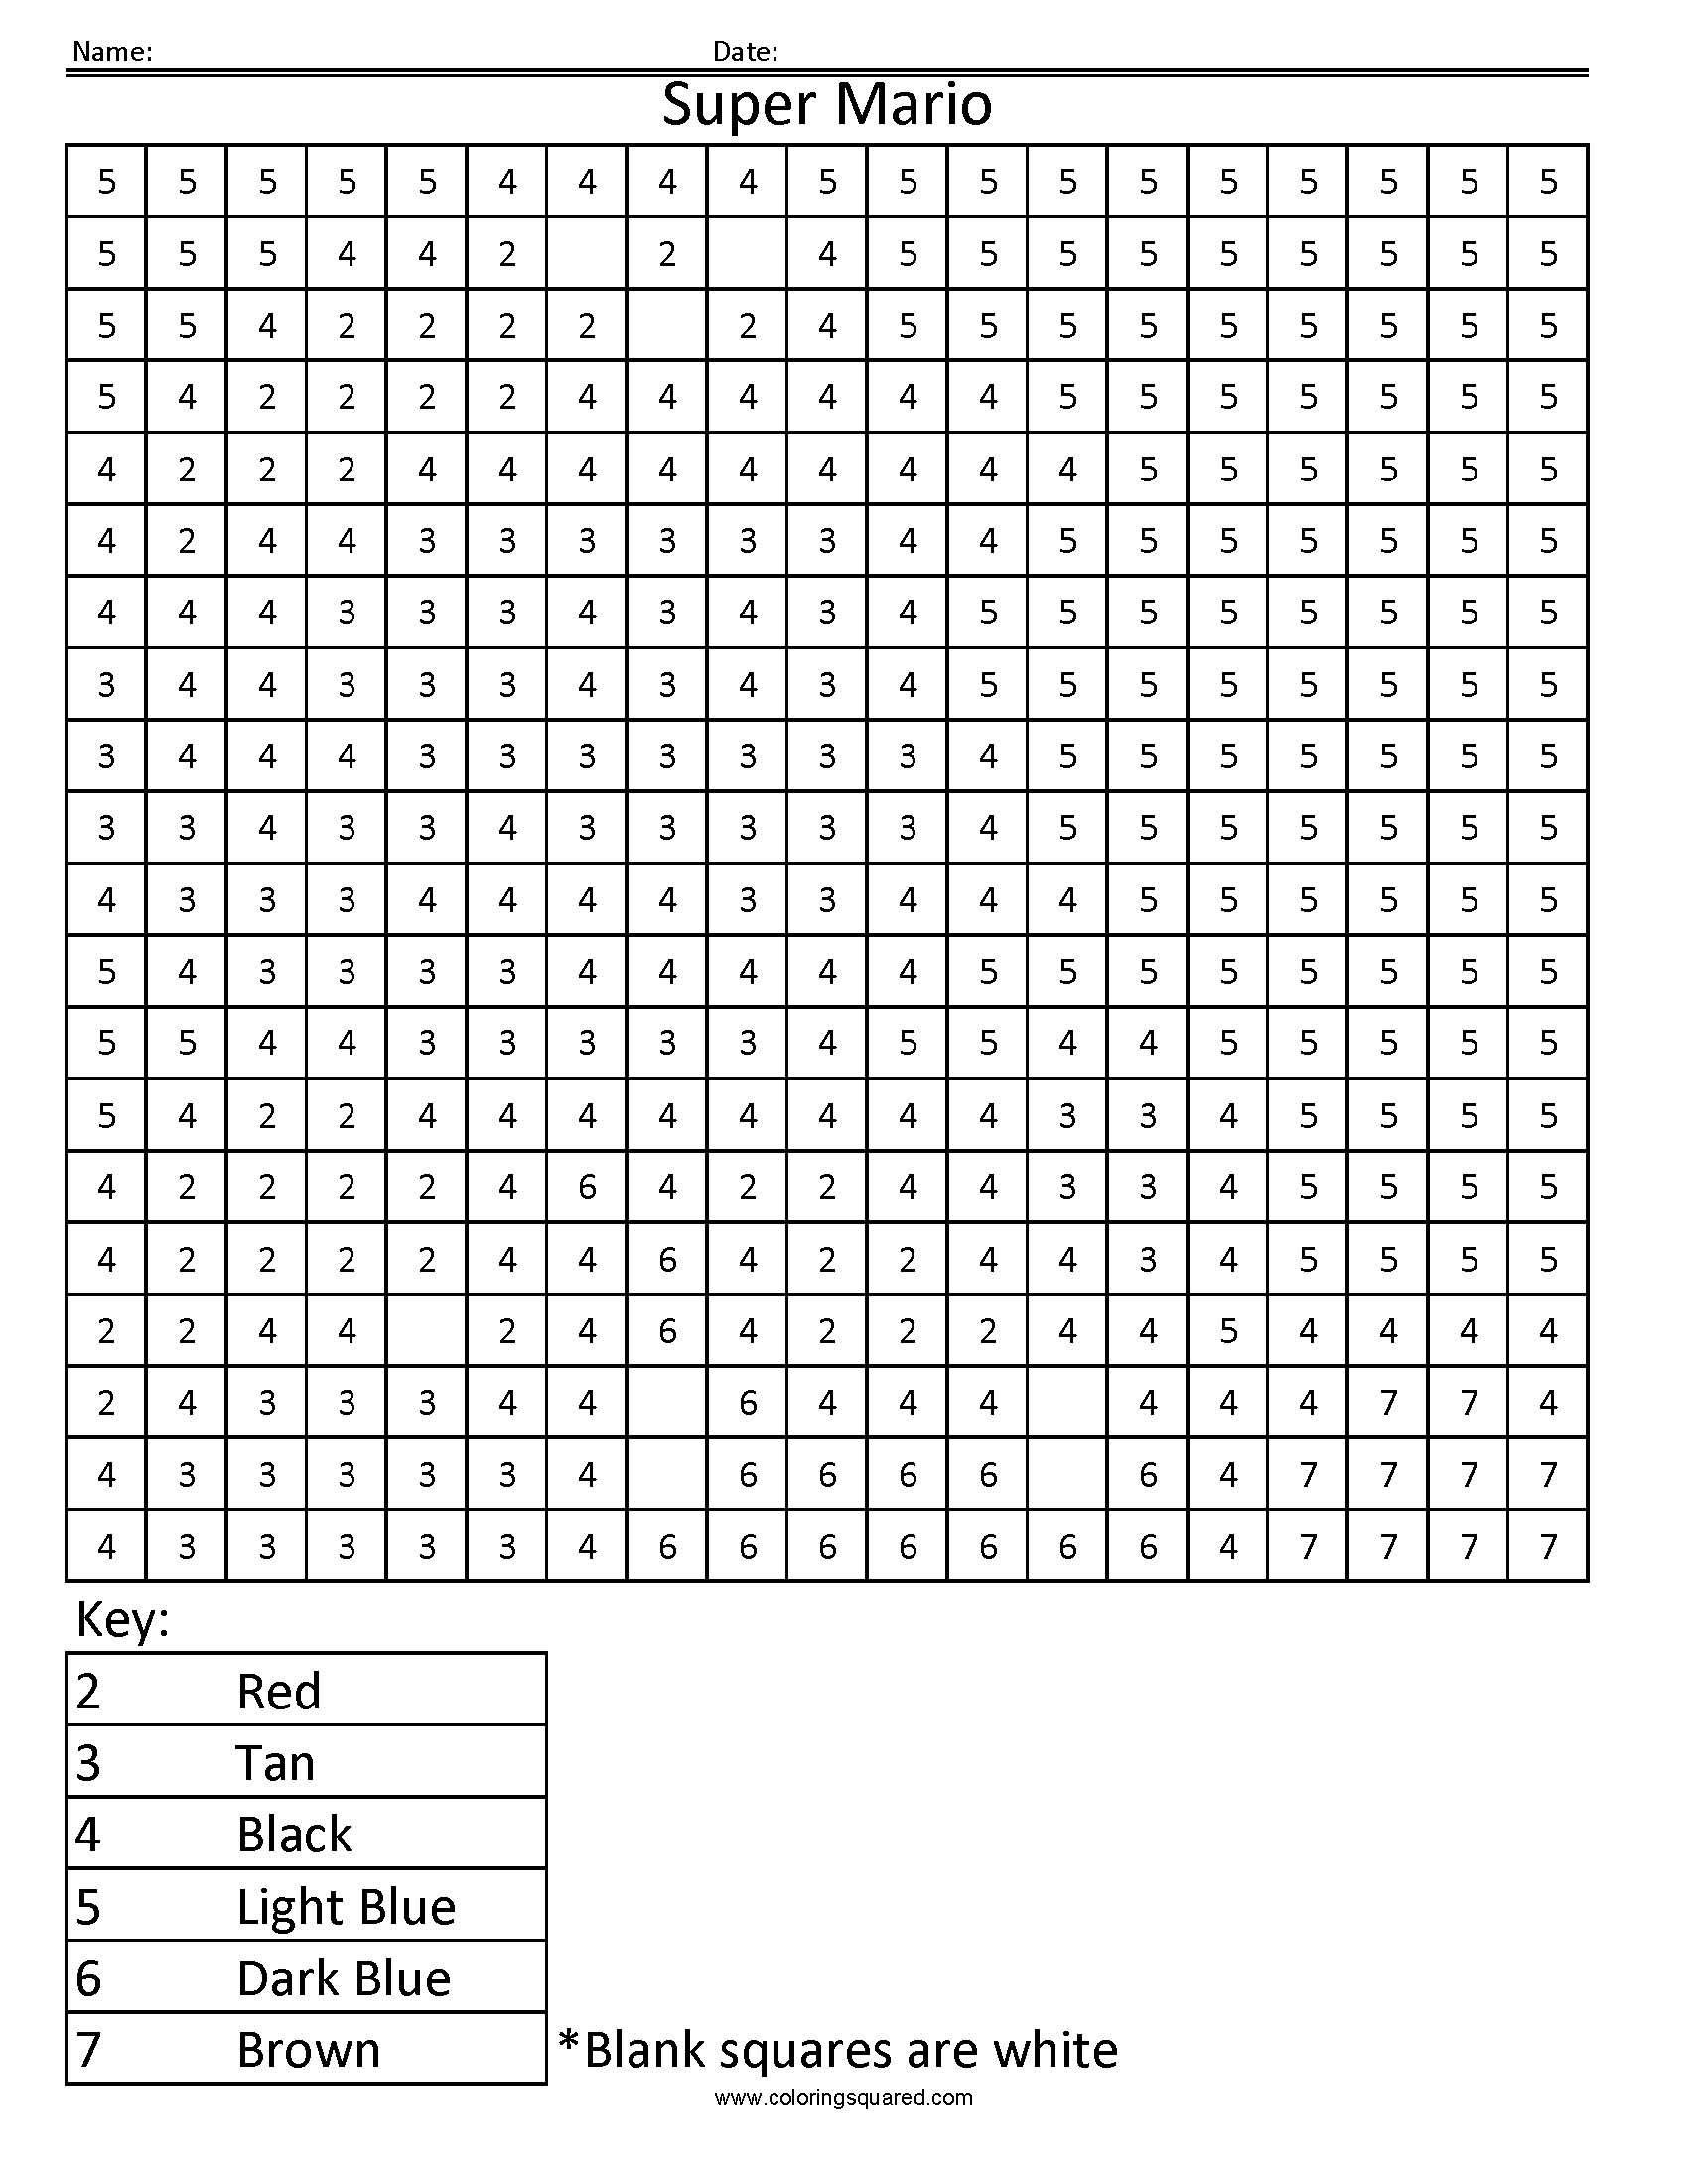 Square Coloring Pages Free Printable In